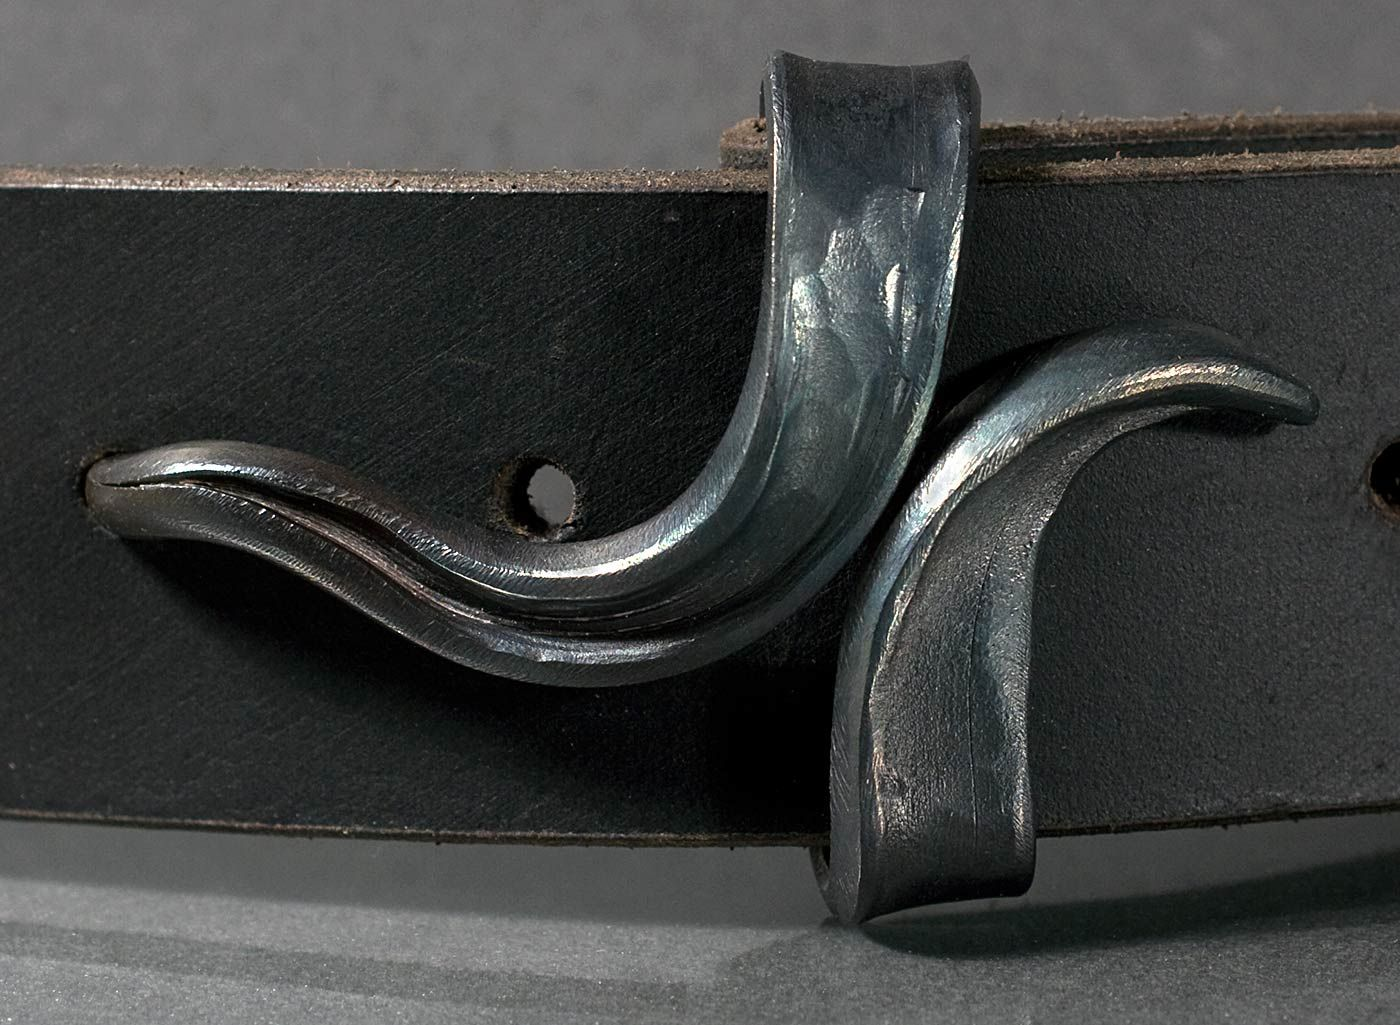 leather belt with handforged square knot beltbuckle